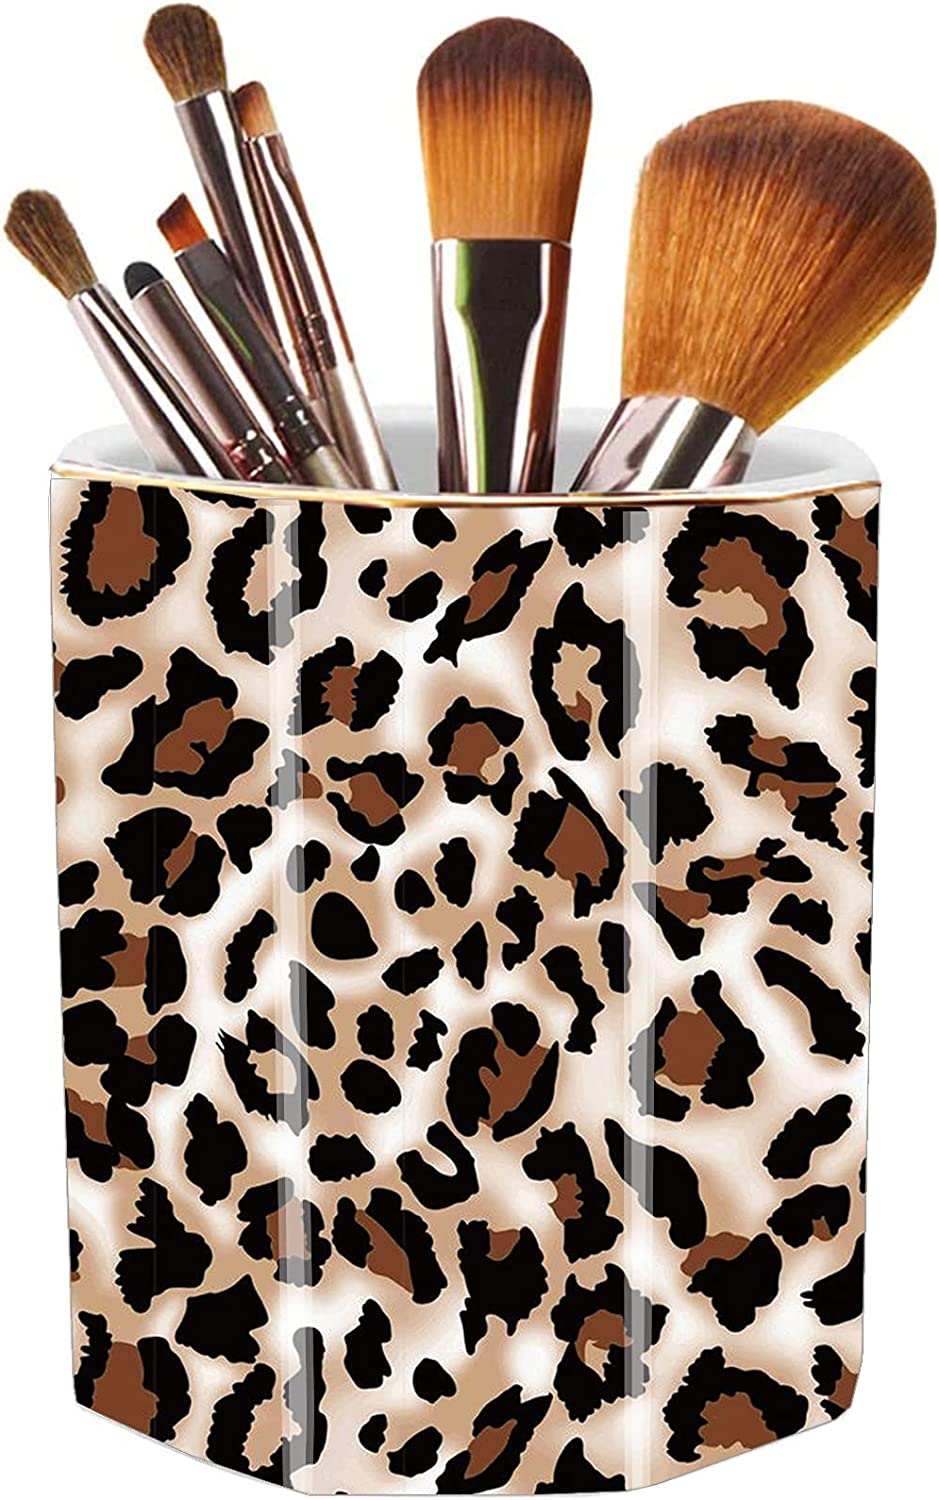 Jwest Pen Holder, Makeup Brush Holder Ceramic Shiny Gold Leopard Cheetah Pattern Animal Pencil Cup for Girls Women Durable Stand Desk Organizer Storage Gift for Office, Classroom, Home Light Brown